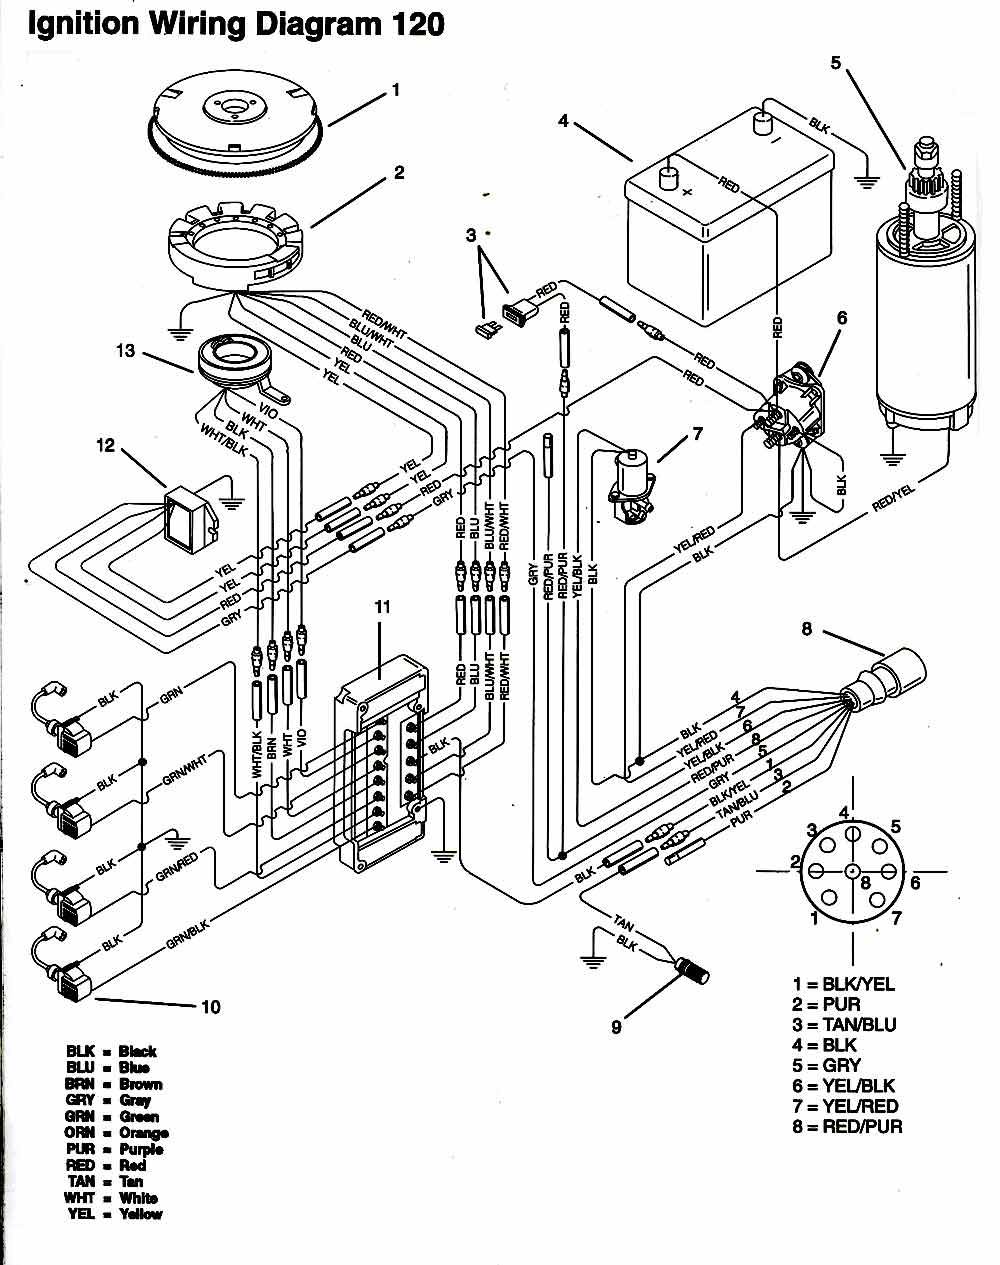 Fine Boat Part Diagram Wiring Diagram Wiring Digital Resources Sulfshebarightsorg